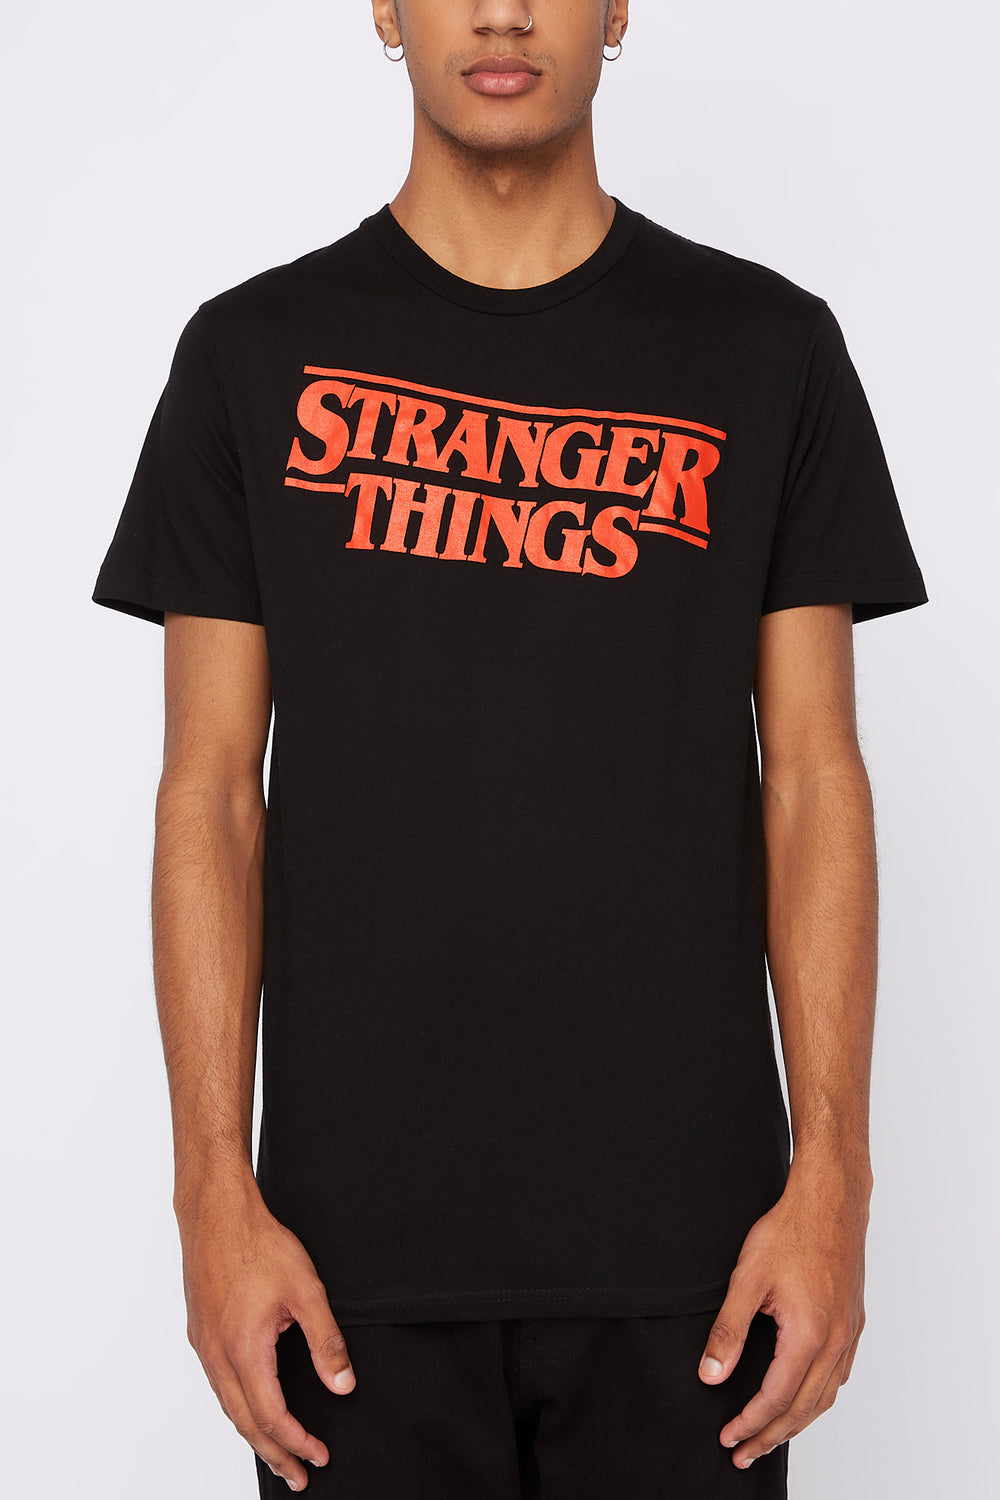 Stranger Things Mens T-Shirt Black